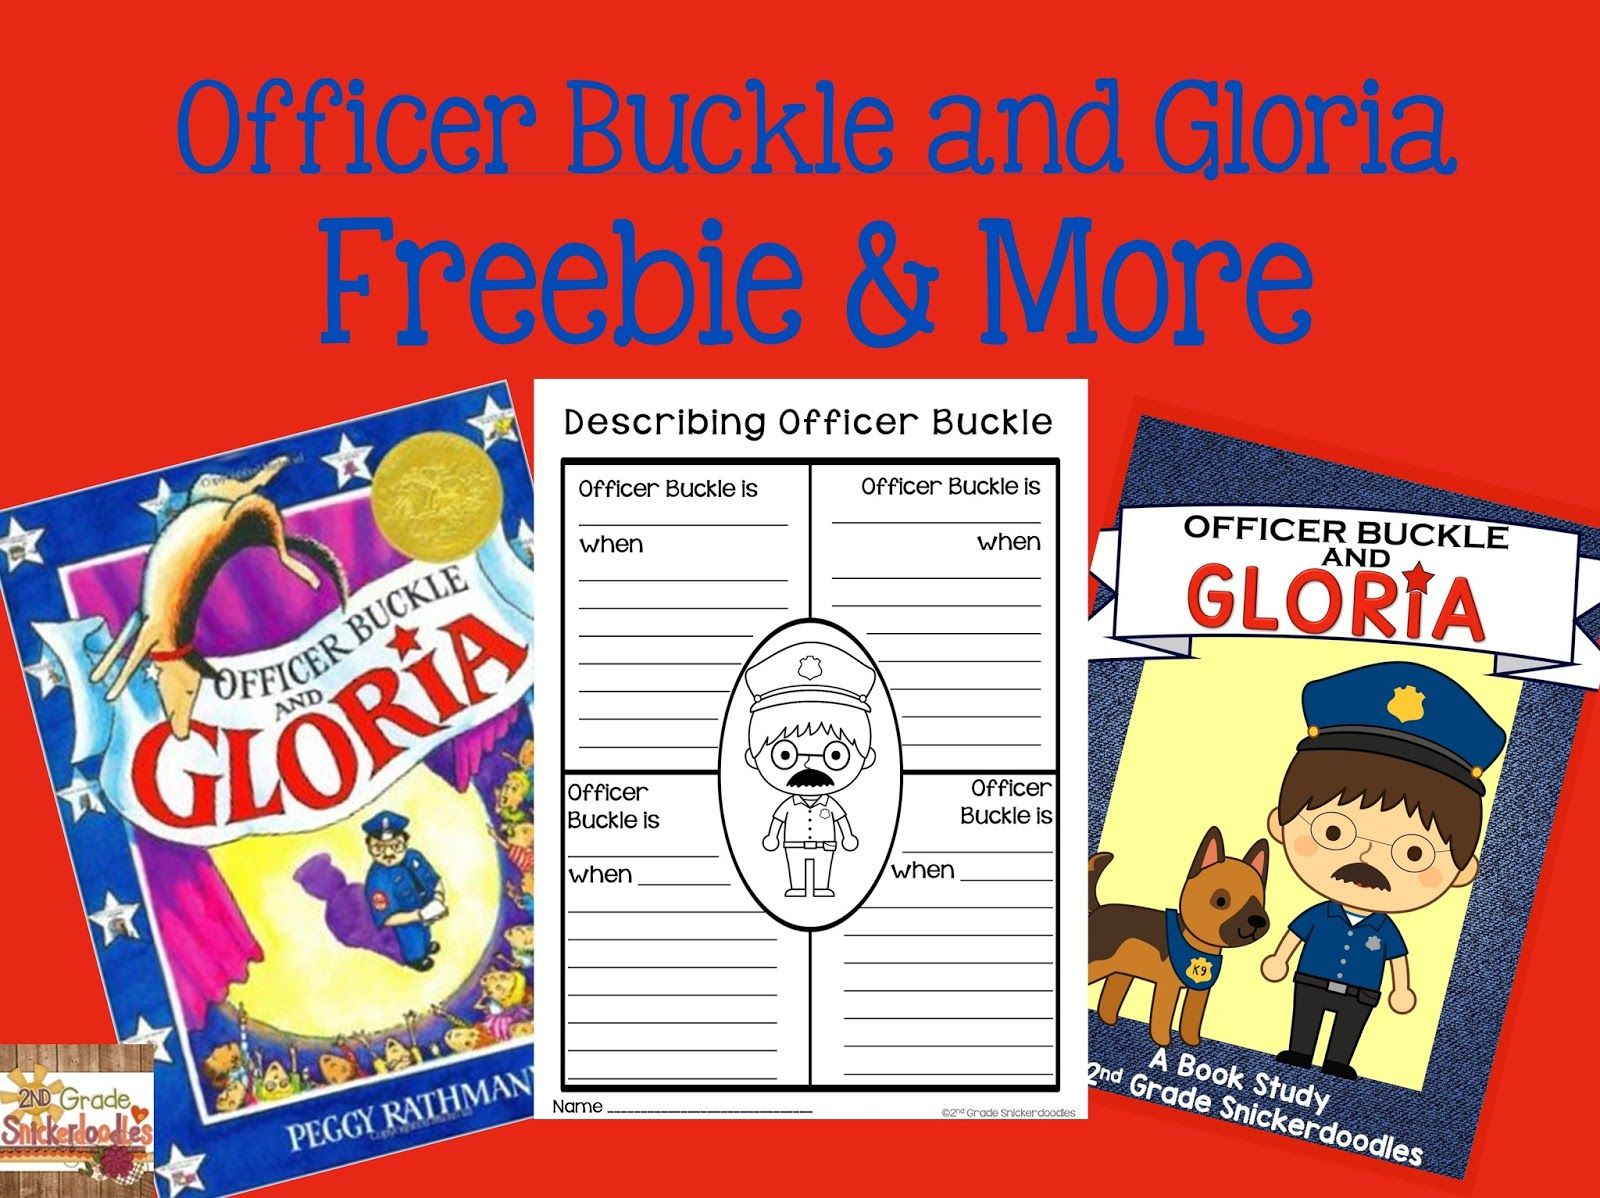 worksheet Officer Buckle And Gloria Worksheets 2nd grade snickerdoodles officer buckle and gloria freebie more